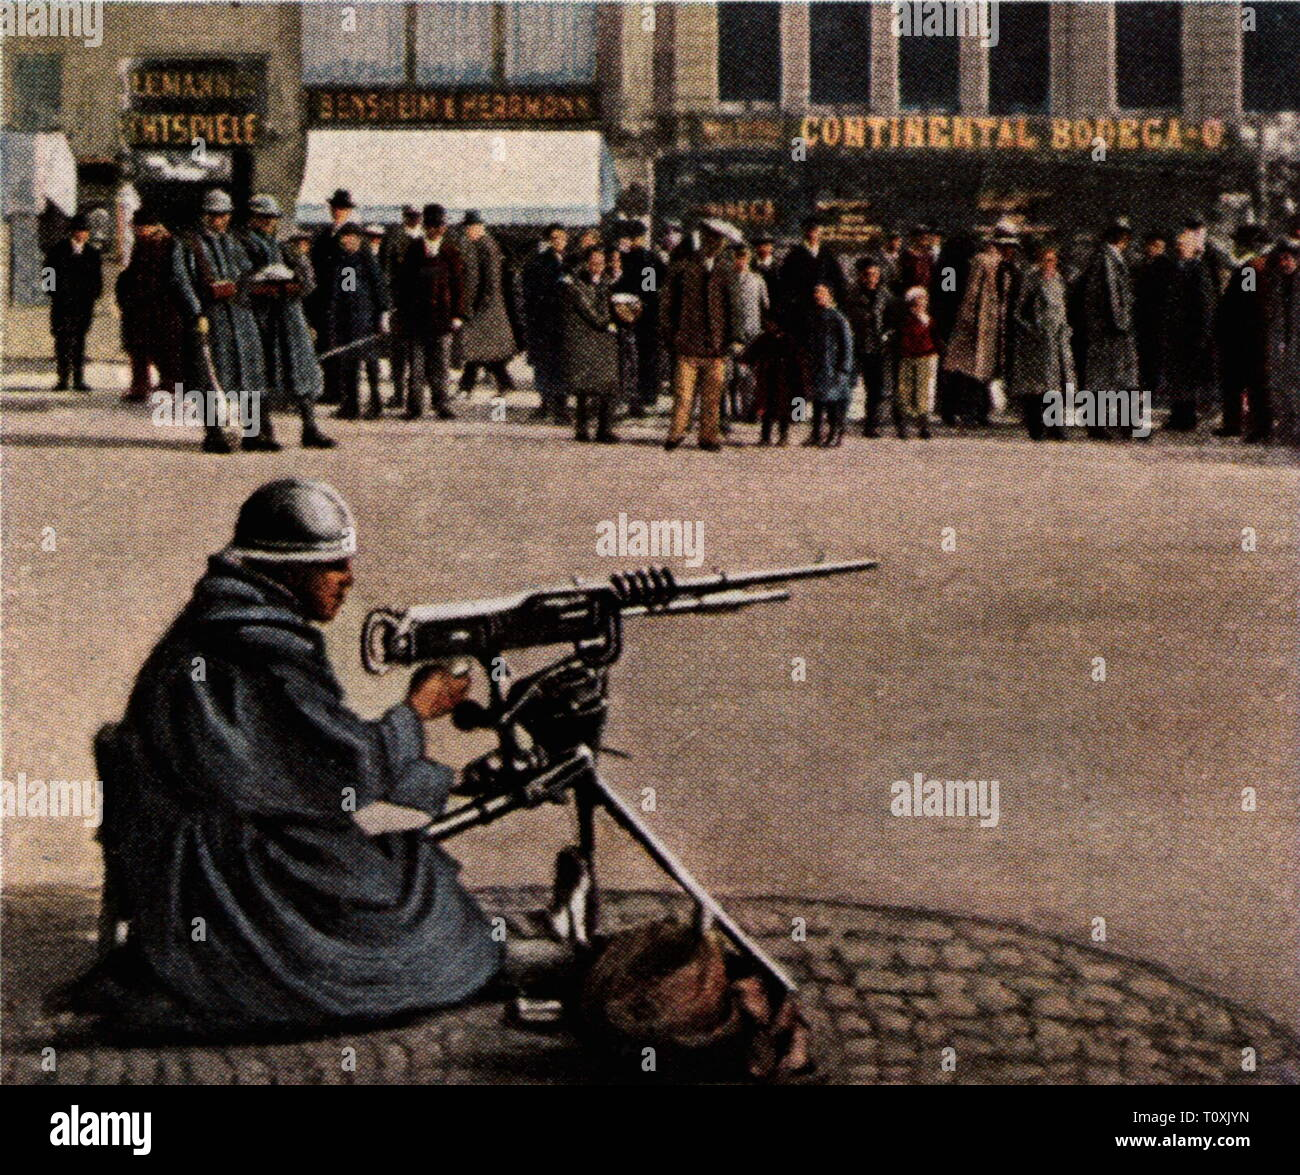 Occupation of a part of Hesse as counter-measure for the entry of the Reichswehr into the Ruhr area, 6.4.1920, French sentry, Hauptwache, Frankfurt am Main, Germany, coloured photograph, cigarette card, series 'Die Nachkriegszeit', 1935, Ruhr Uprising, March uprising, Ruhr conflict, soldiers, soldier, military, machine gun, machine guns, machine-gun, people, People's State of Hesse, Germany, German Reich, Weimar Republic, 1920s, 20th century, occupation, occupations, counter-measure, countermeasure, countervailing measure, counter-measures, count, Additional-Rights-Clearance-Info-Not-Available - Stock Image